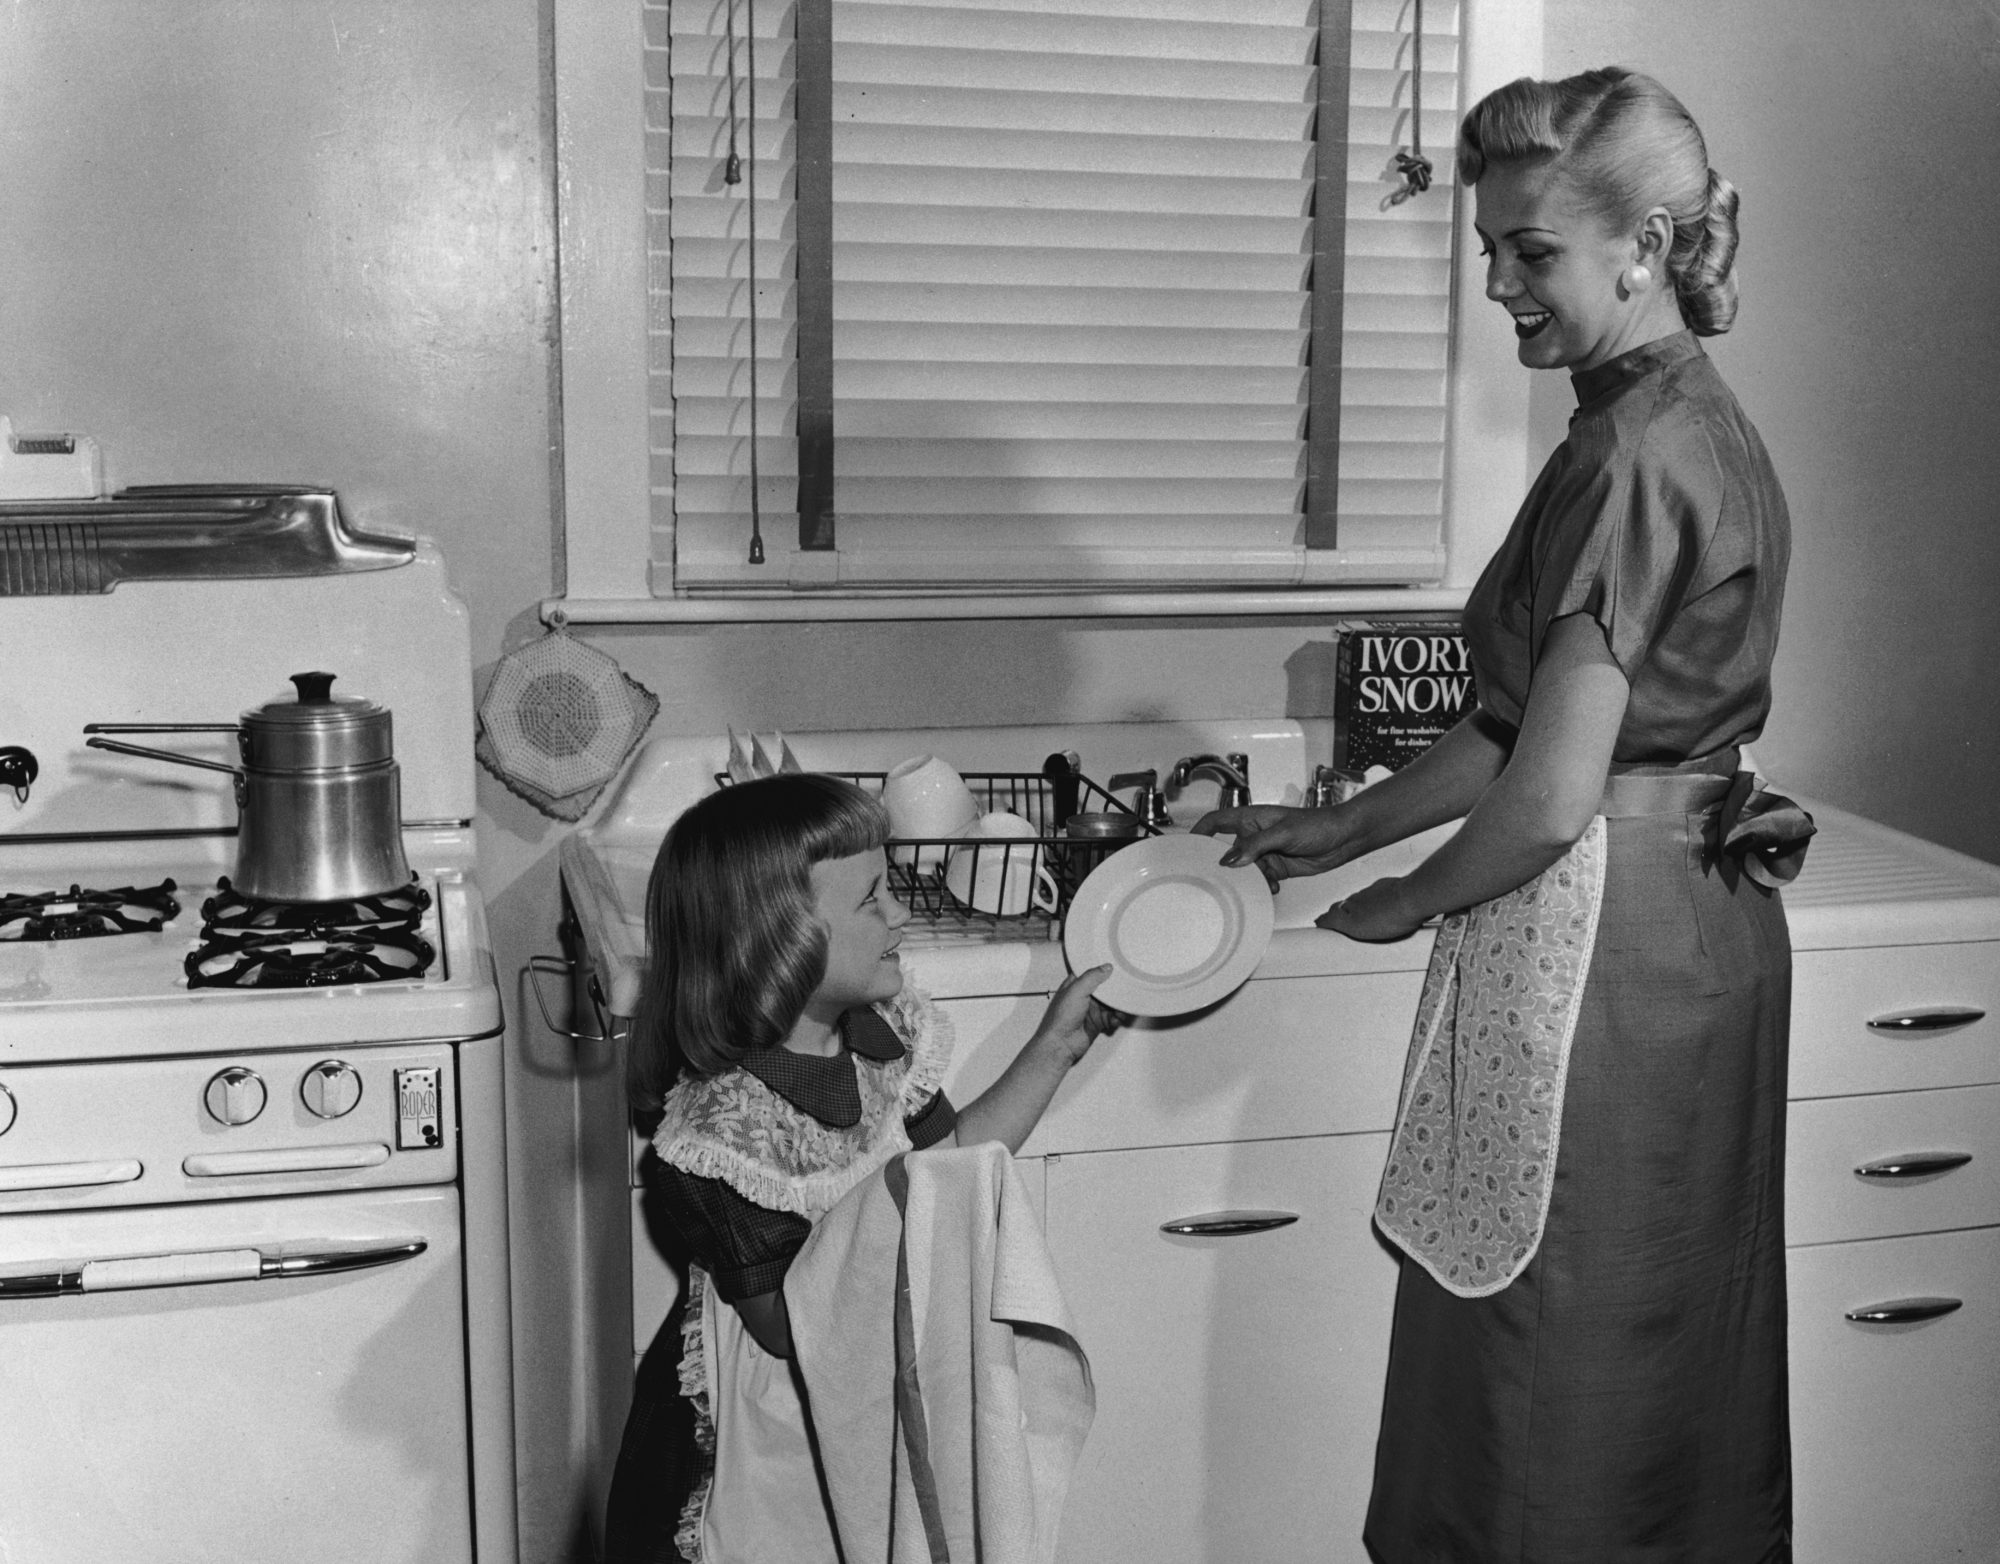 Vintage photo of child helping mother clean dishes